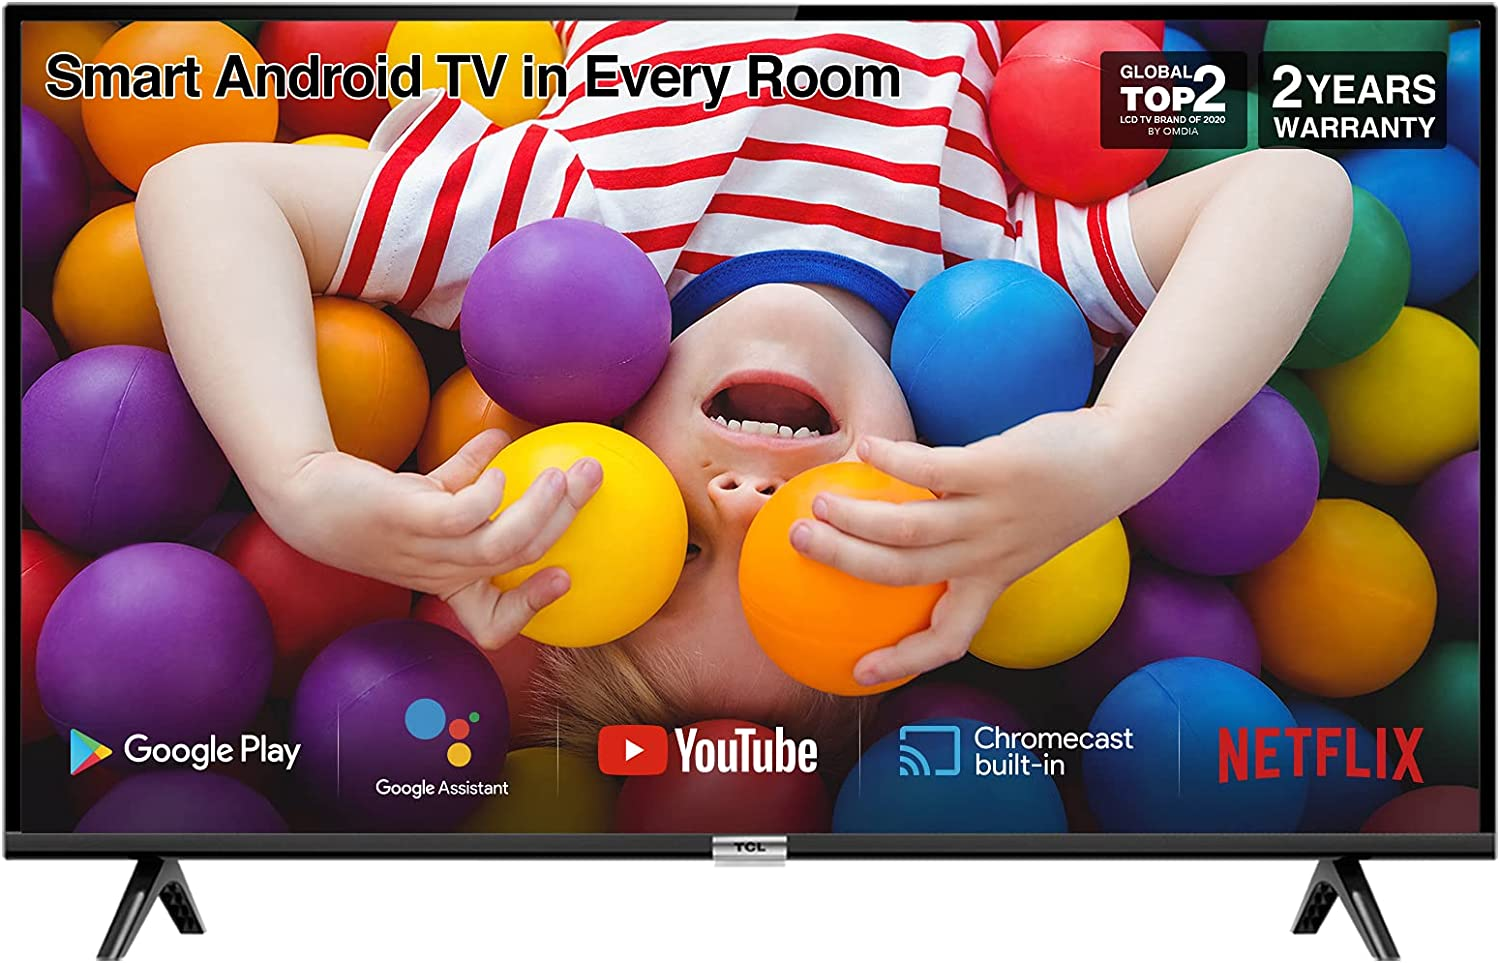 Image of TCL 32P500K 32-Inch LED Smart Android TV